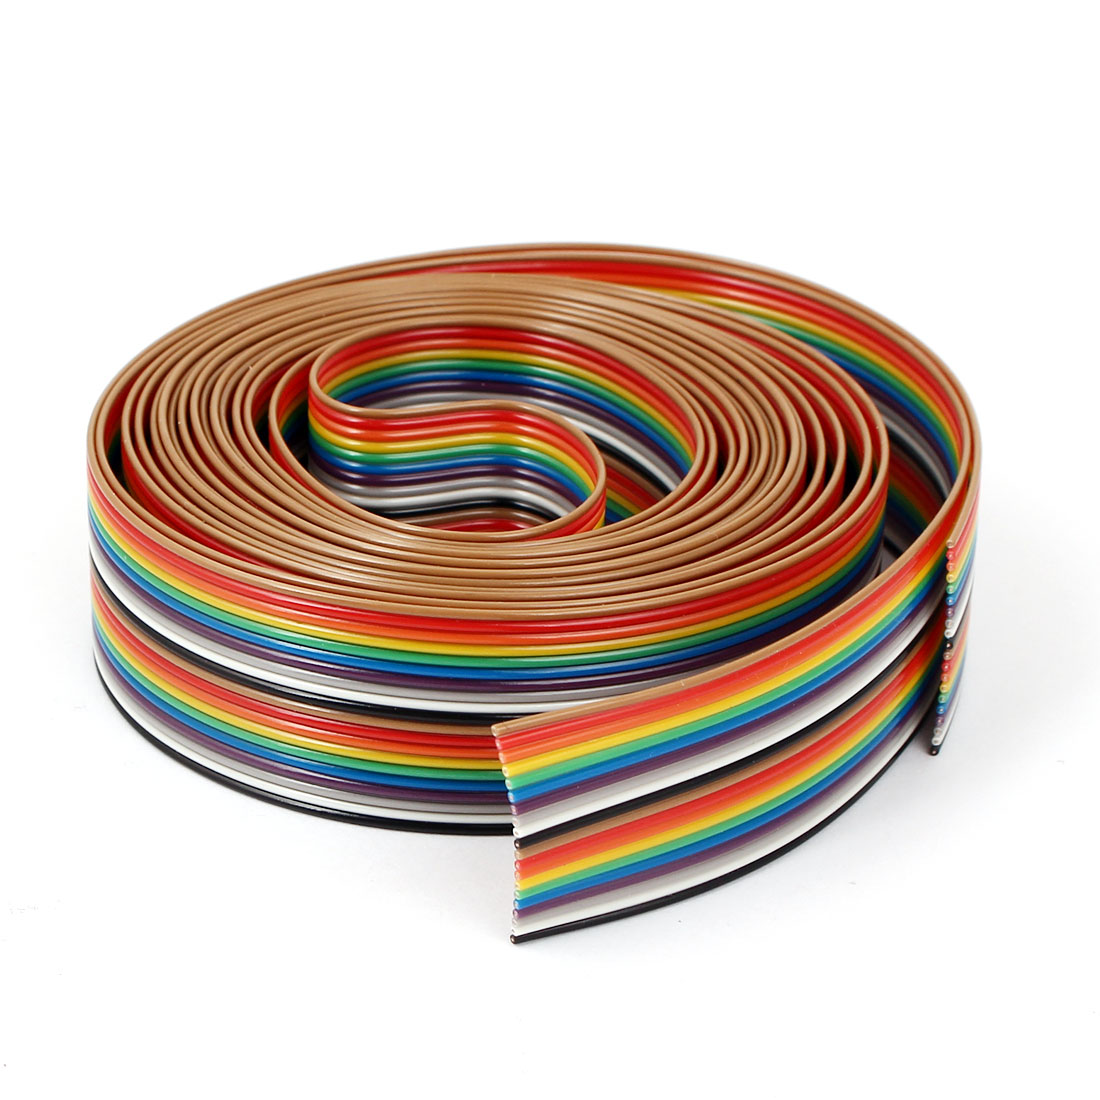 3 Meter 9.8ft 16 Way 16 pin Flat Color Rainbow Ribbon IDC Cable Wire Rainbow Cable